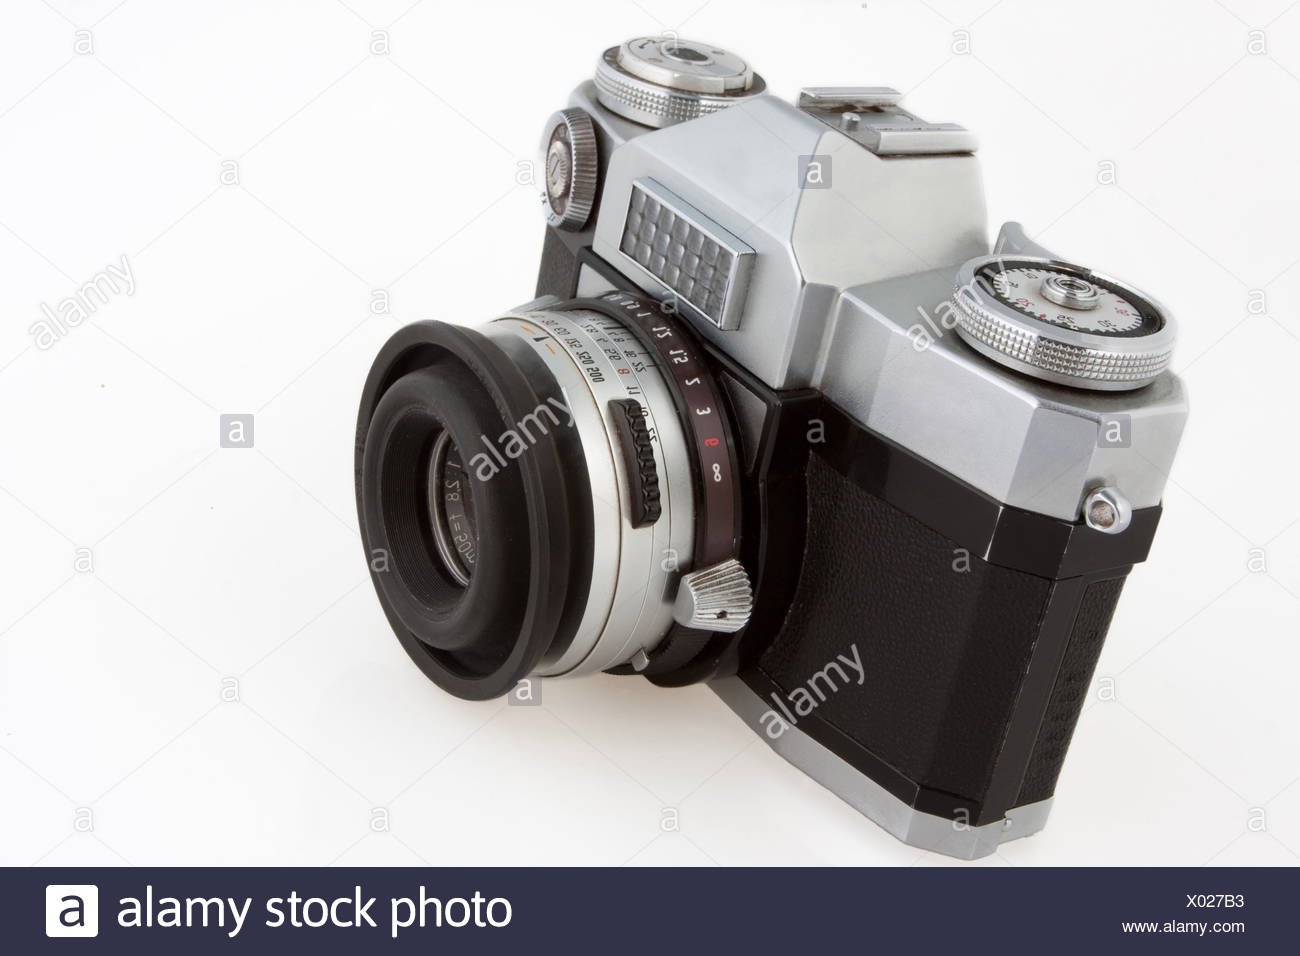 Old vintage SLR film camera isolated on white. - Stock Image